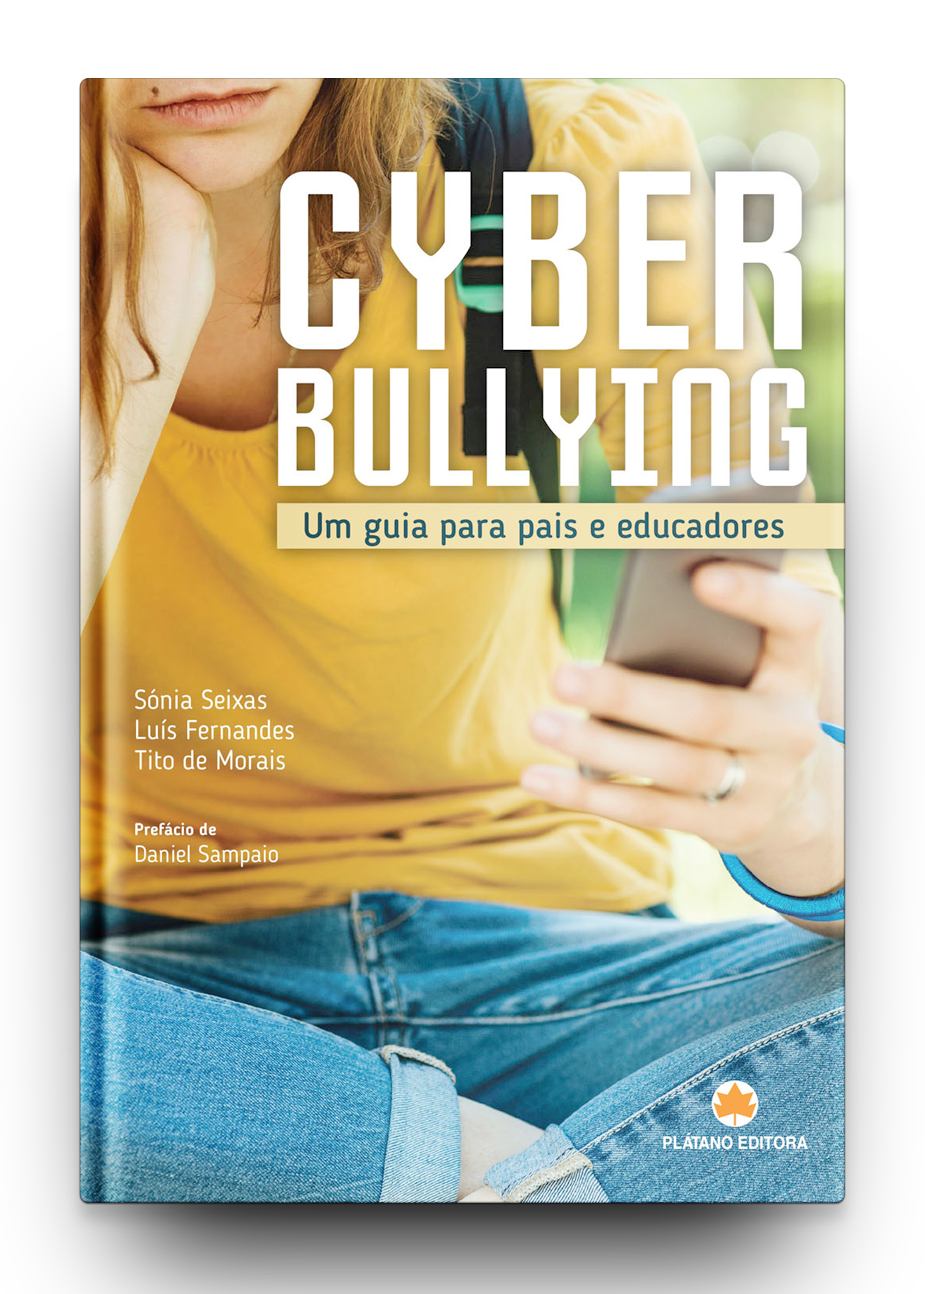 Capa do livro CyberBullying